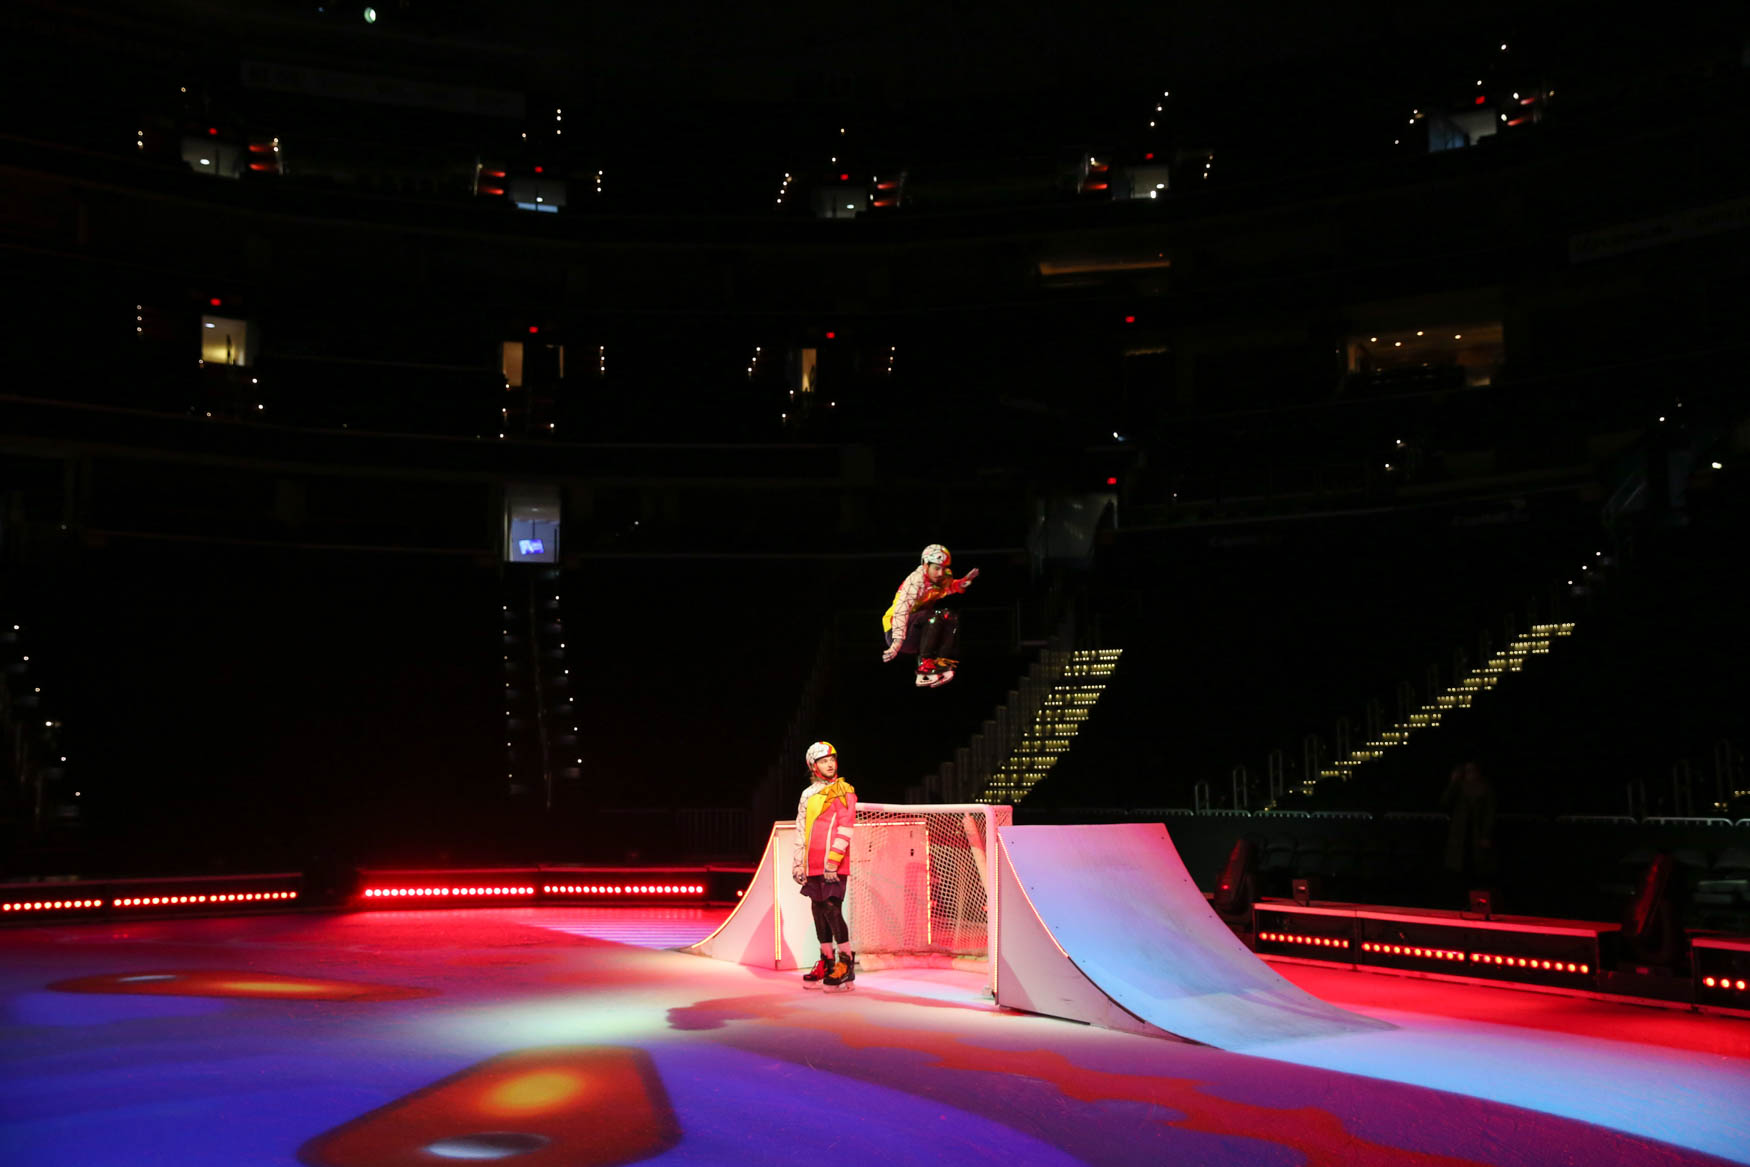 Crystal, Cirque du Soleil's show on ice, is coming to Capital One Arena tonight and will run through December 9. In addition to the usual high flying stunts, the performers will glide across the ice. To add to the{ } already high stakes, some of the performers had never even ice skated before joining to the performance. Here's a sneak peek of one of the acts you can catch at Crystal. (Amanda Andrade-Rhoades/DC Refined)